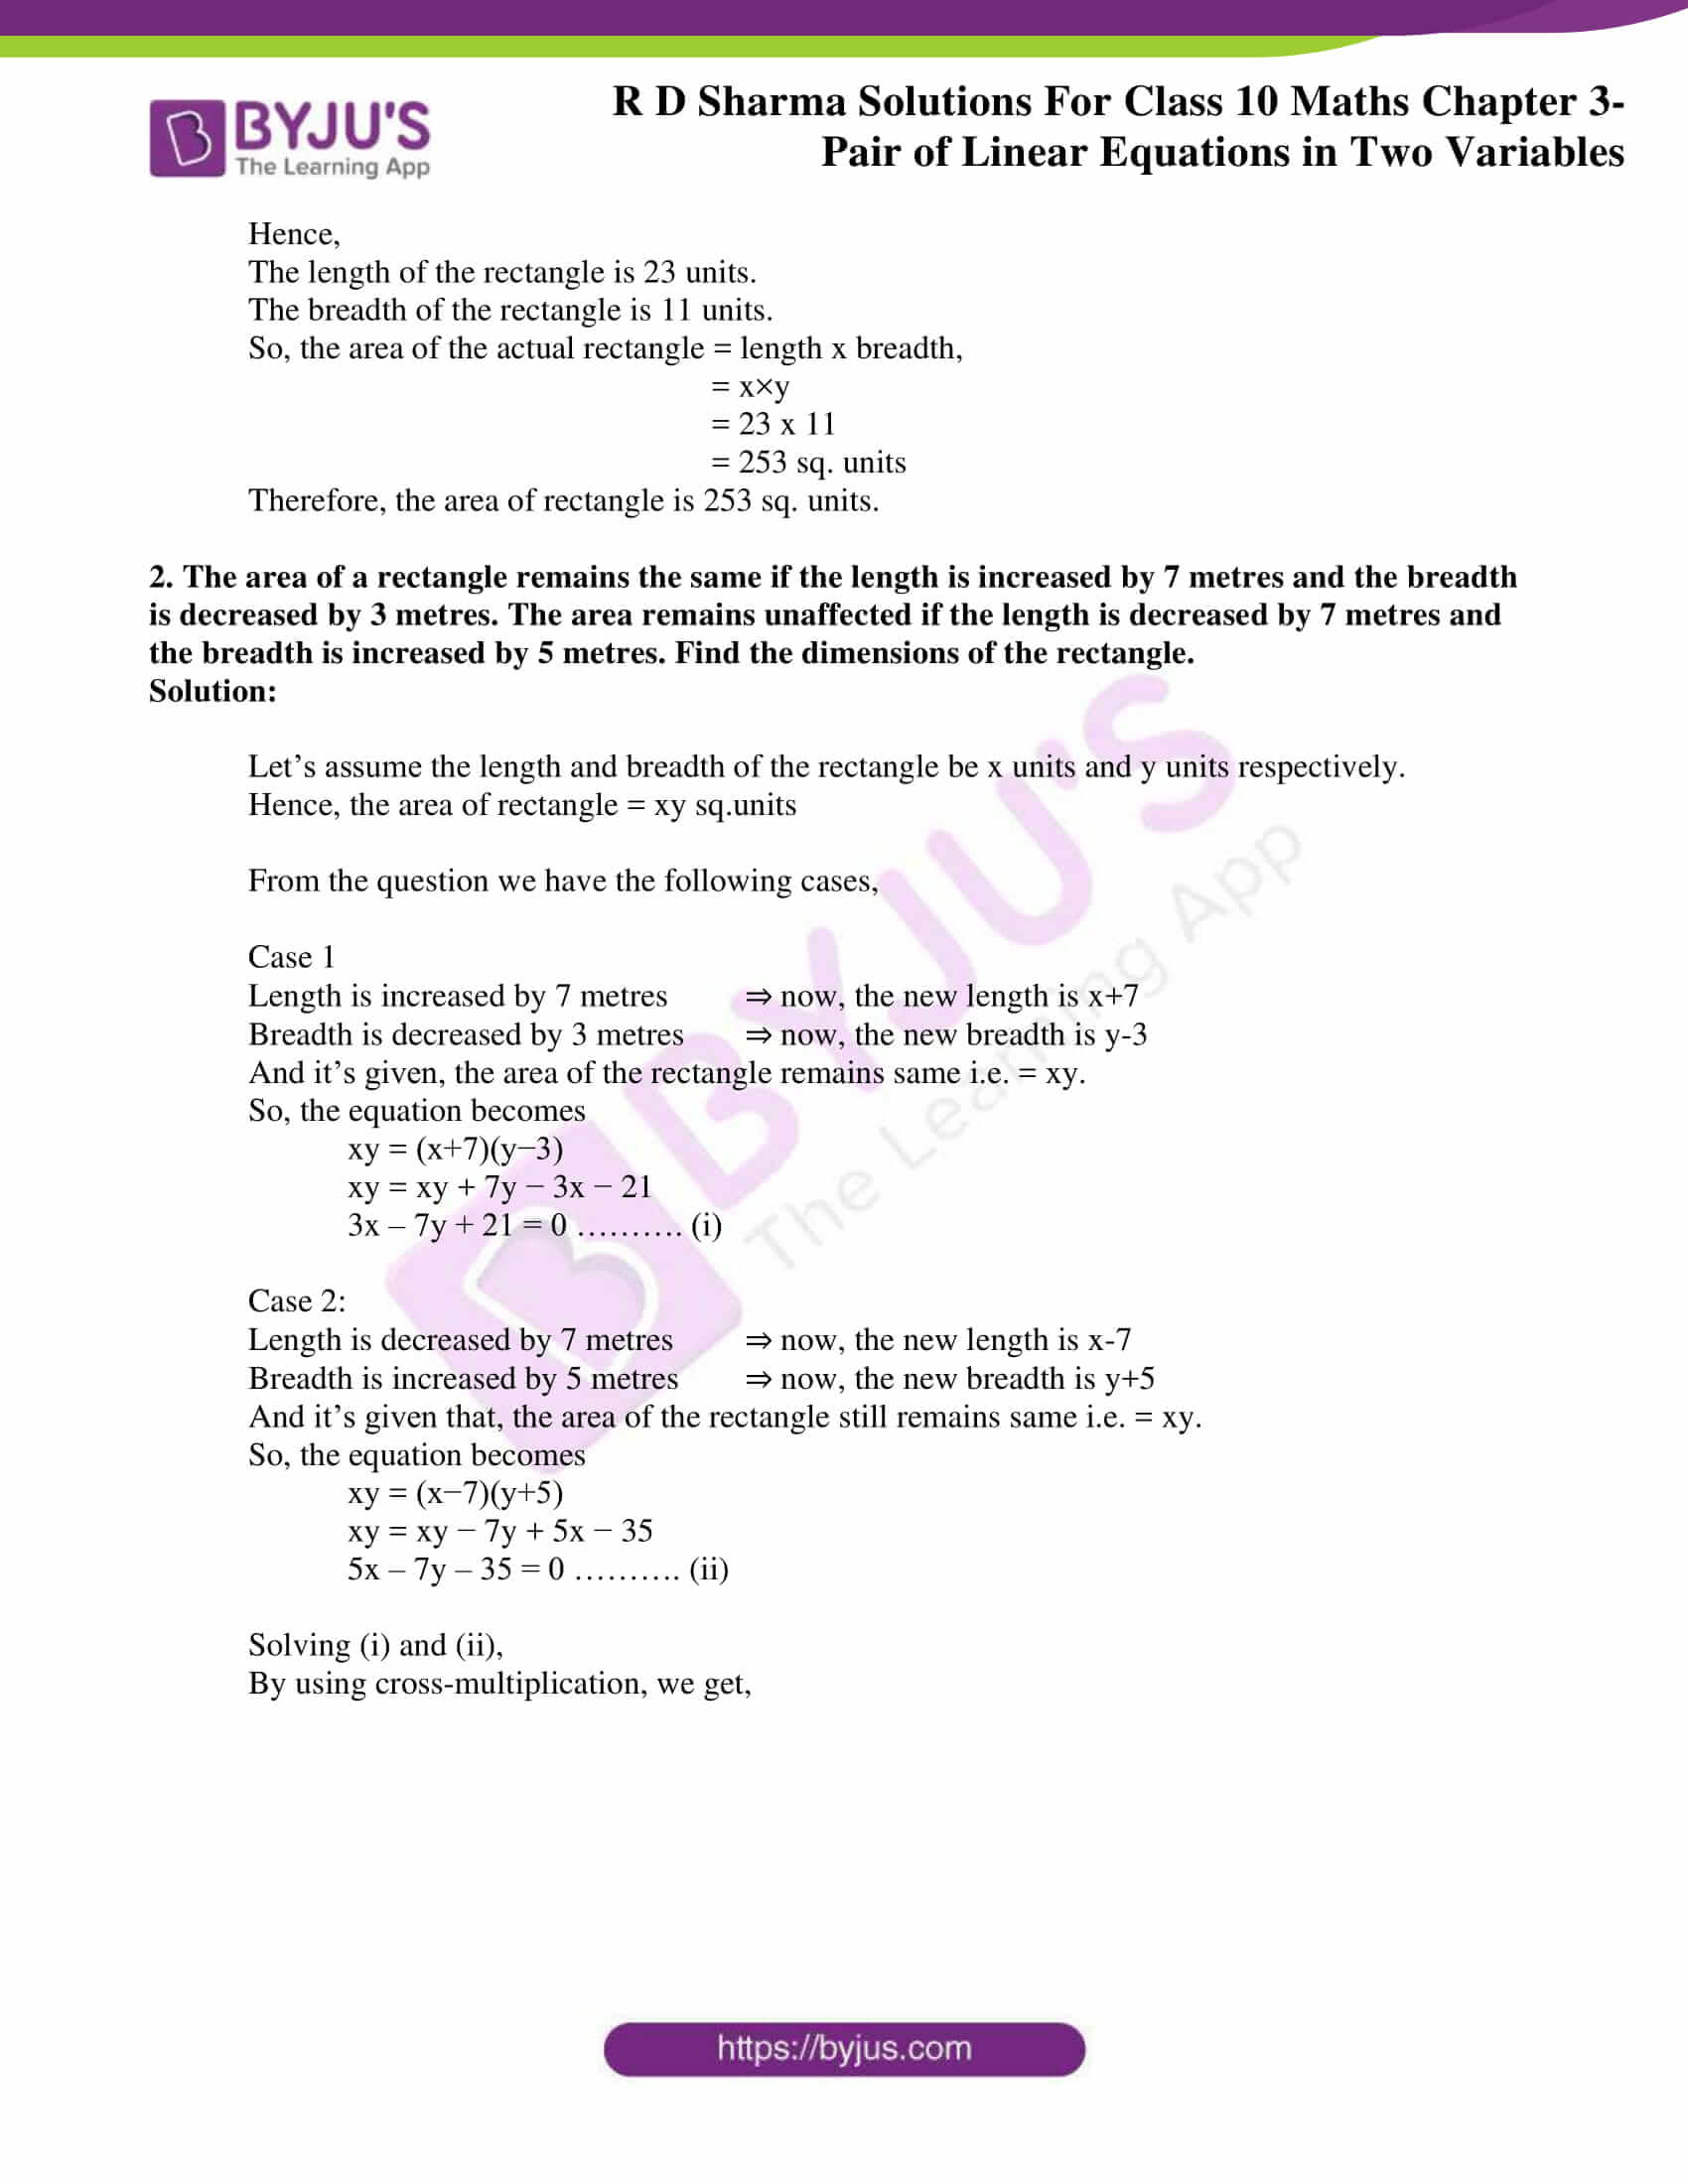 rd sharma solutions for class 10 chapter 3 ex 3.11